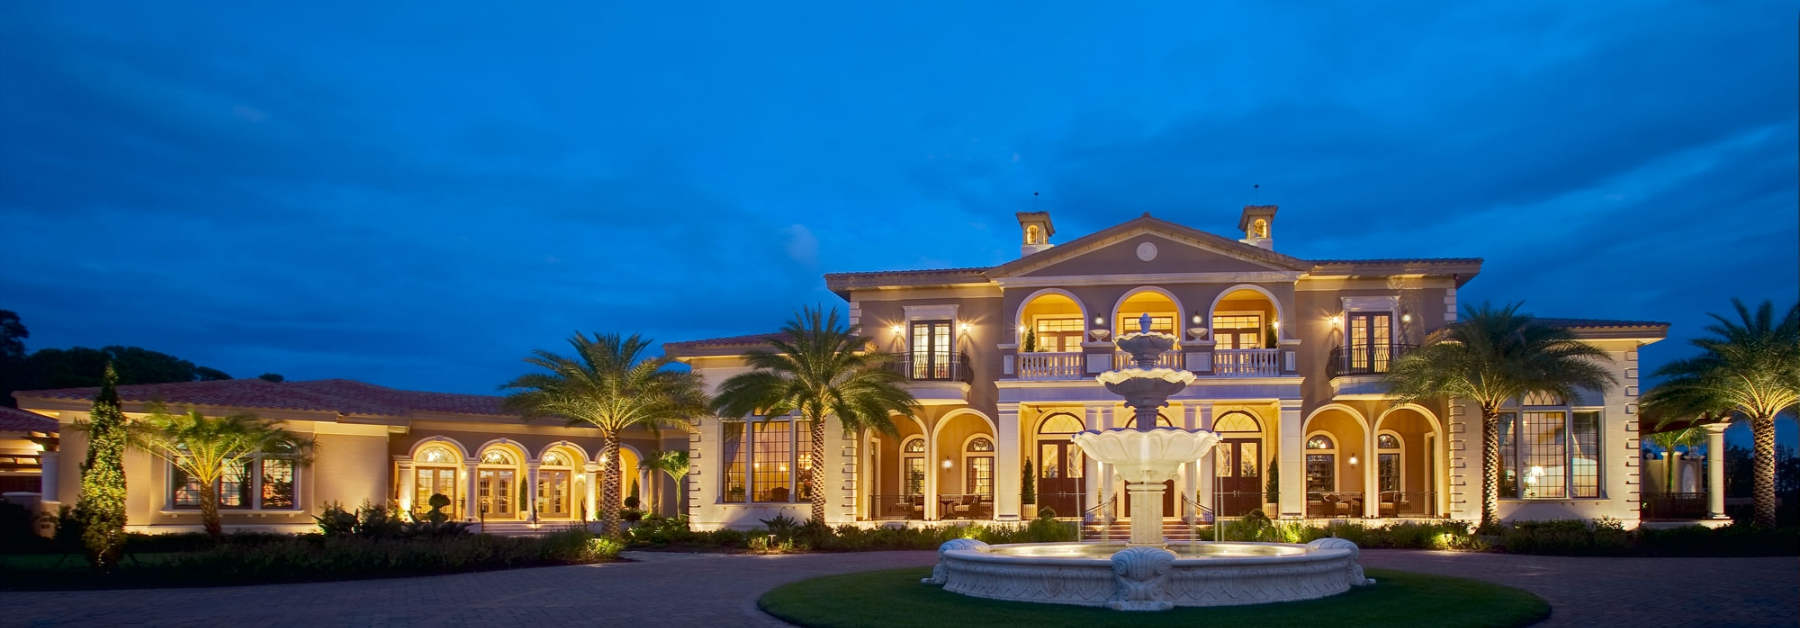 John cannon homes sarasota s award winning custom luxury for Custom home designer en ligne